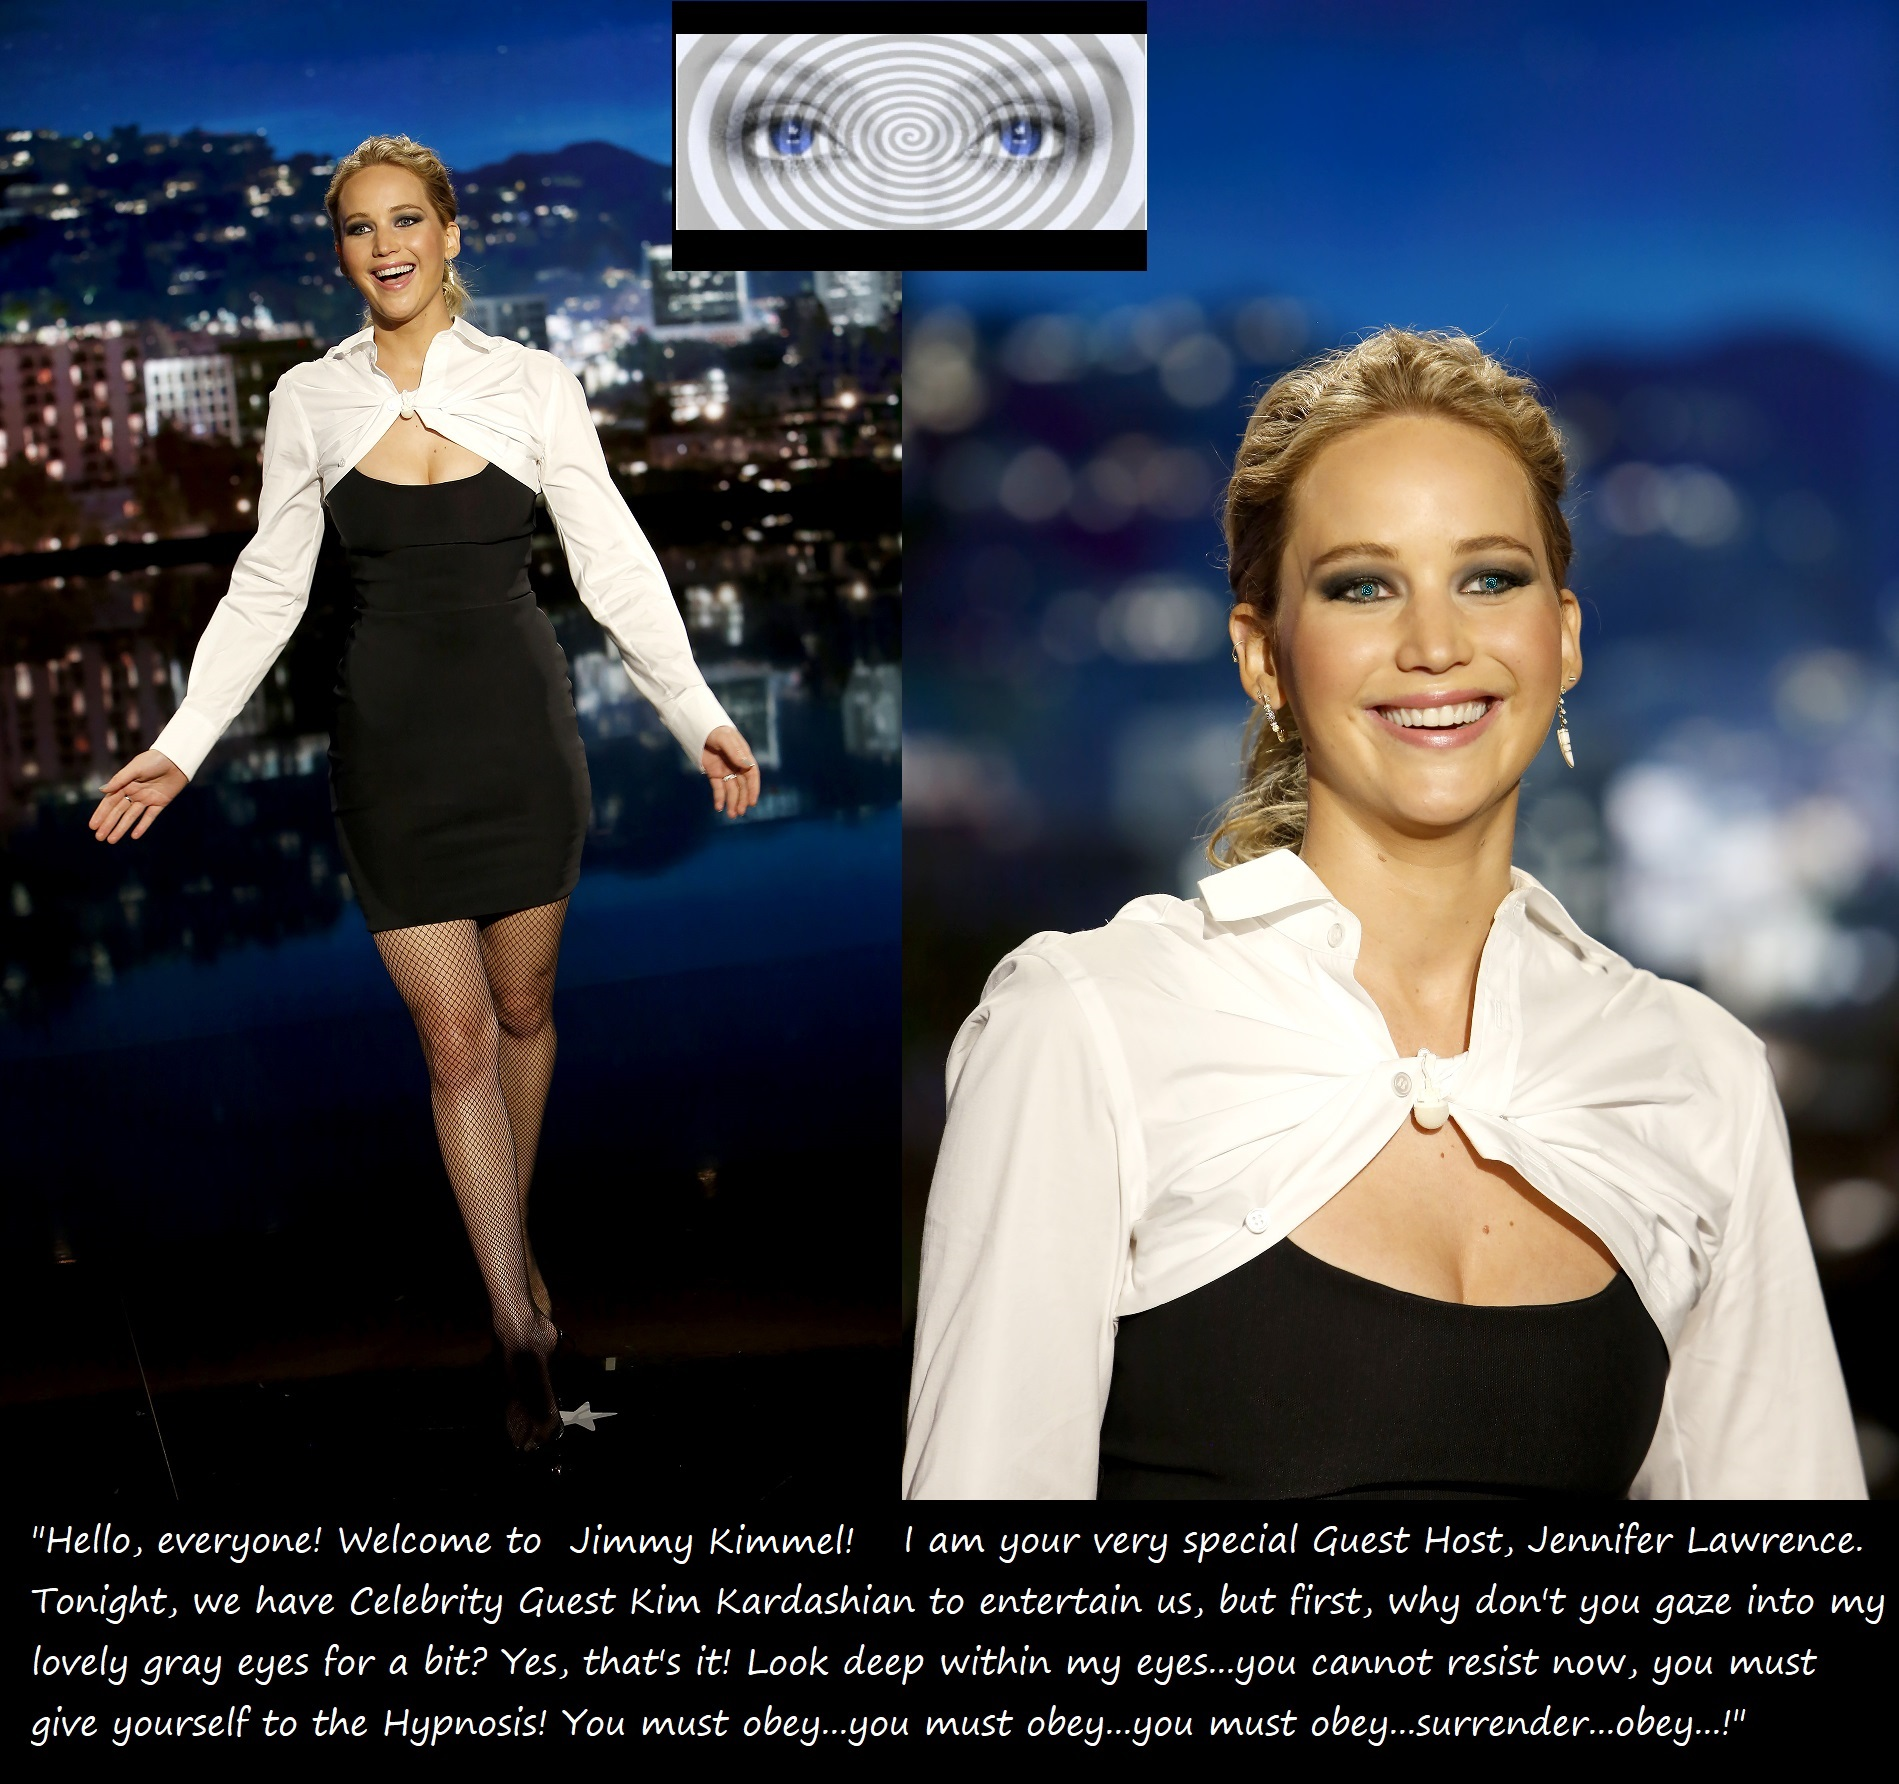 Jennifer Lawrence: The Hypnotic Guest Host! (5) by ...